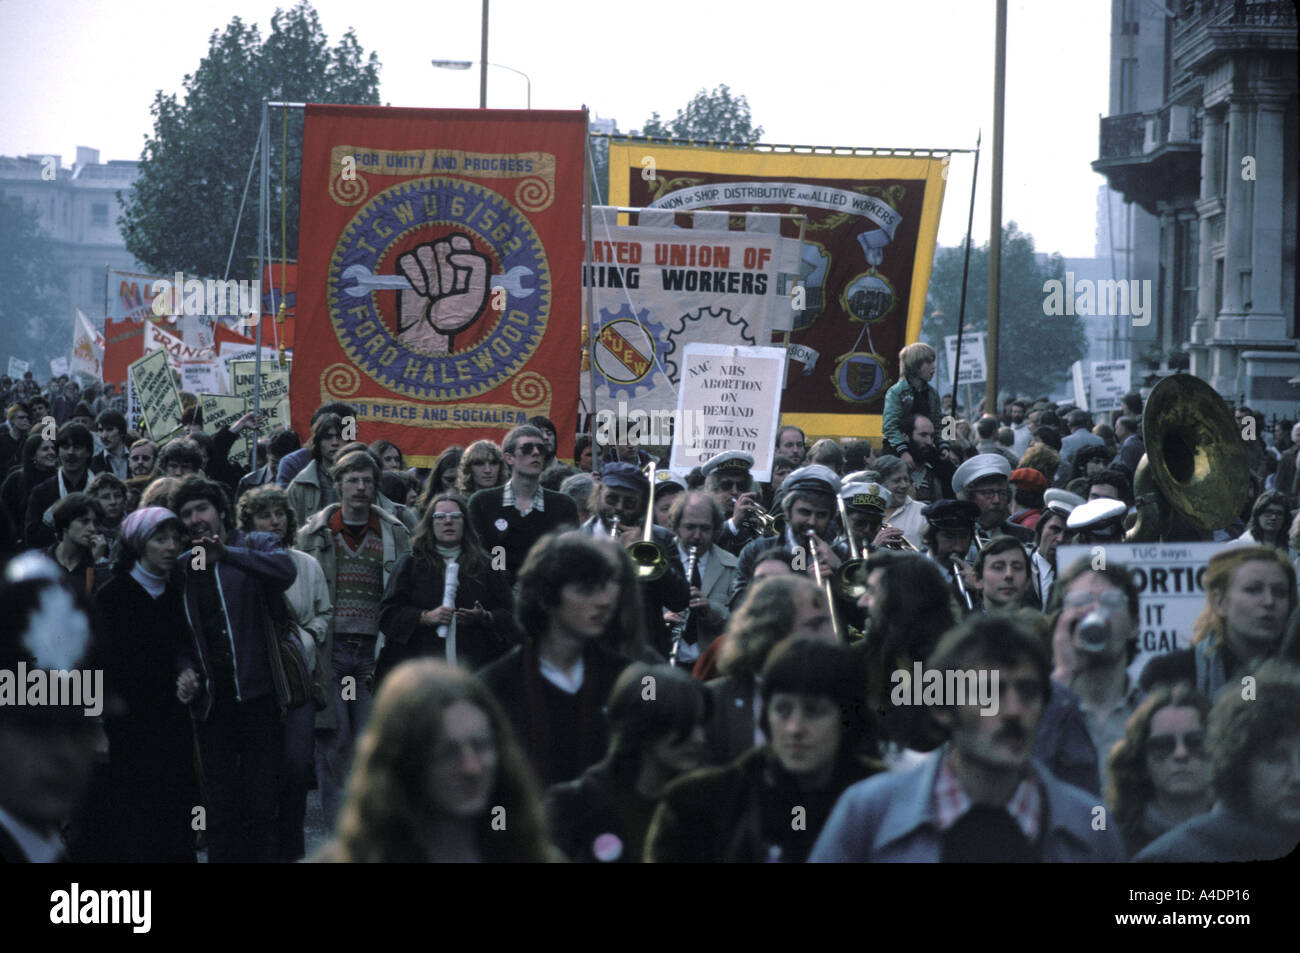 A Trade Union Congress pro-abortion  demonstration, London, UK - Stock Image